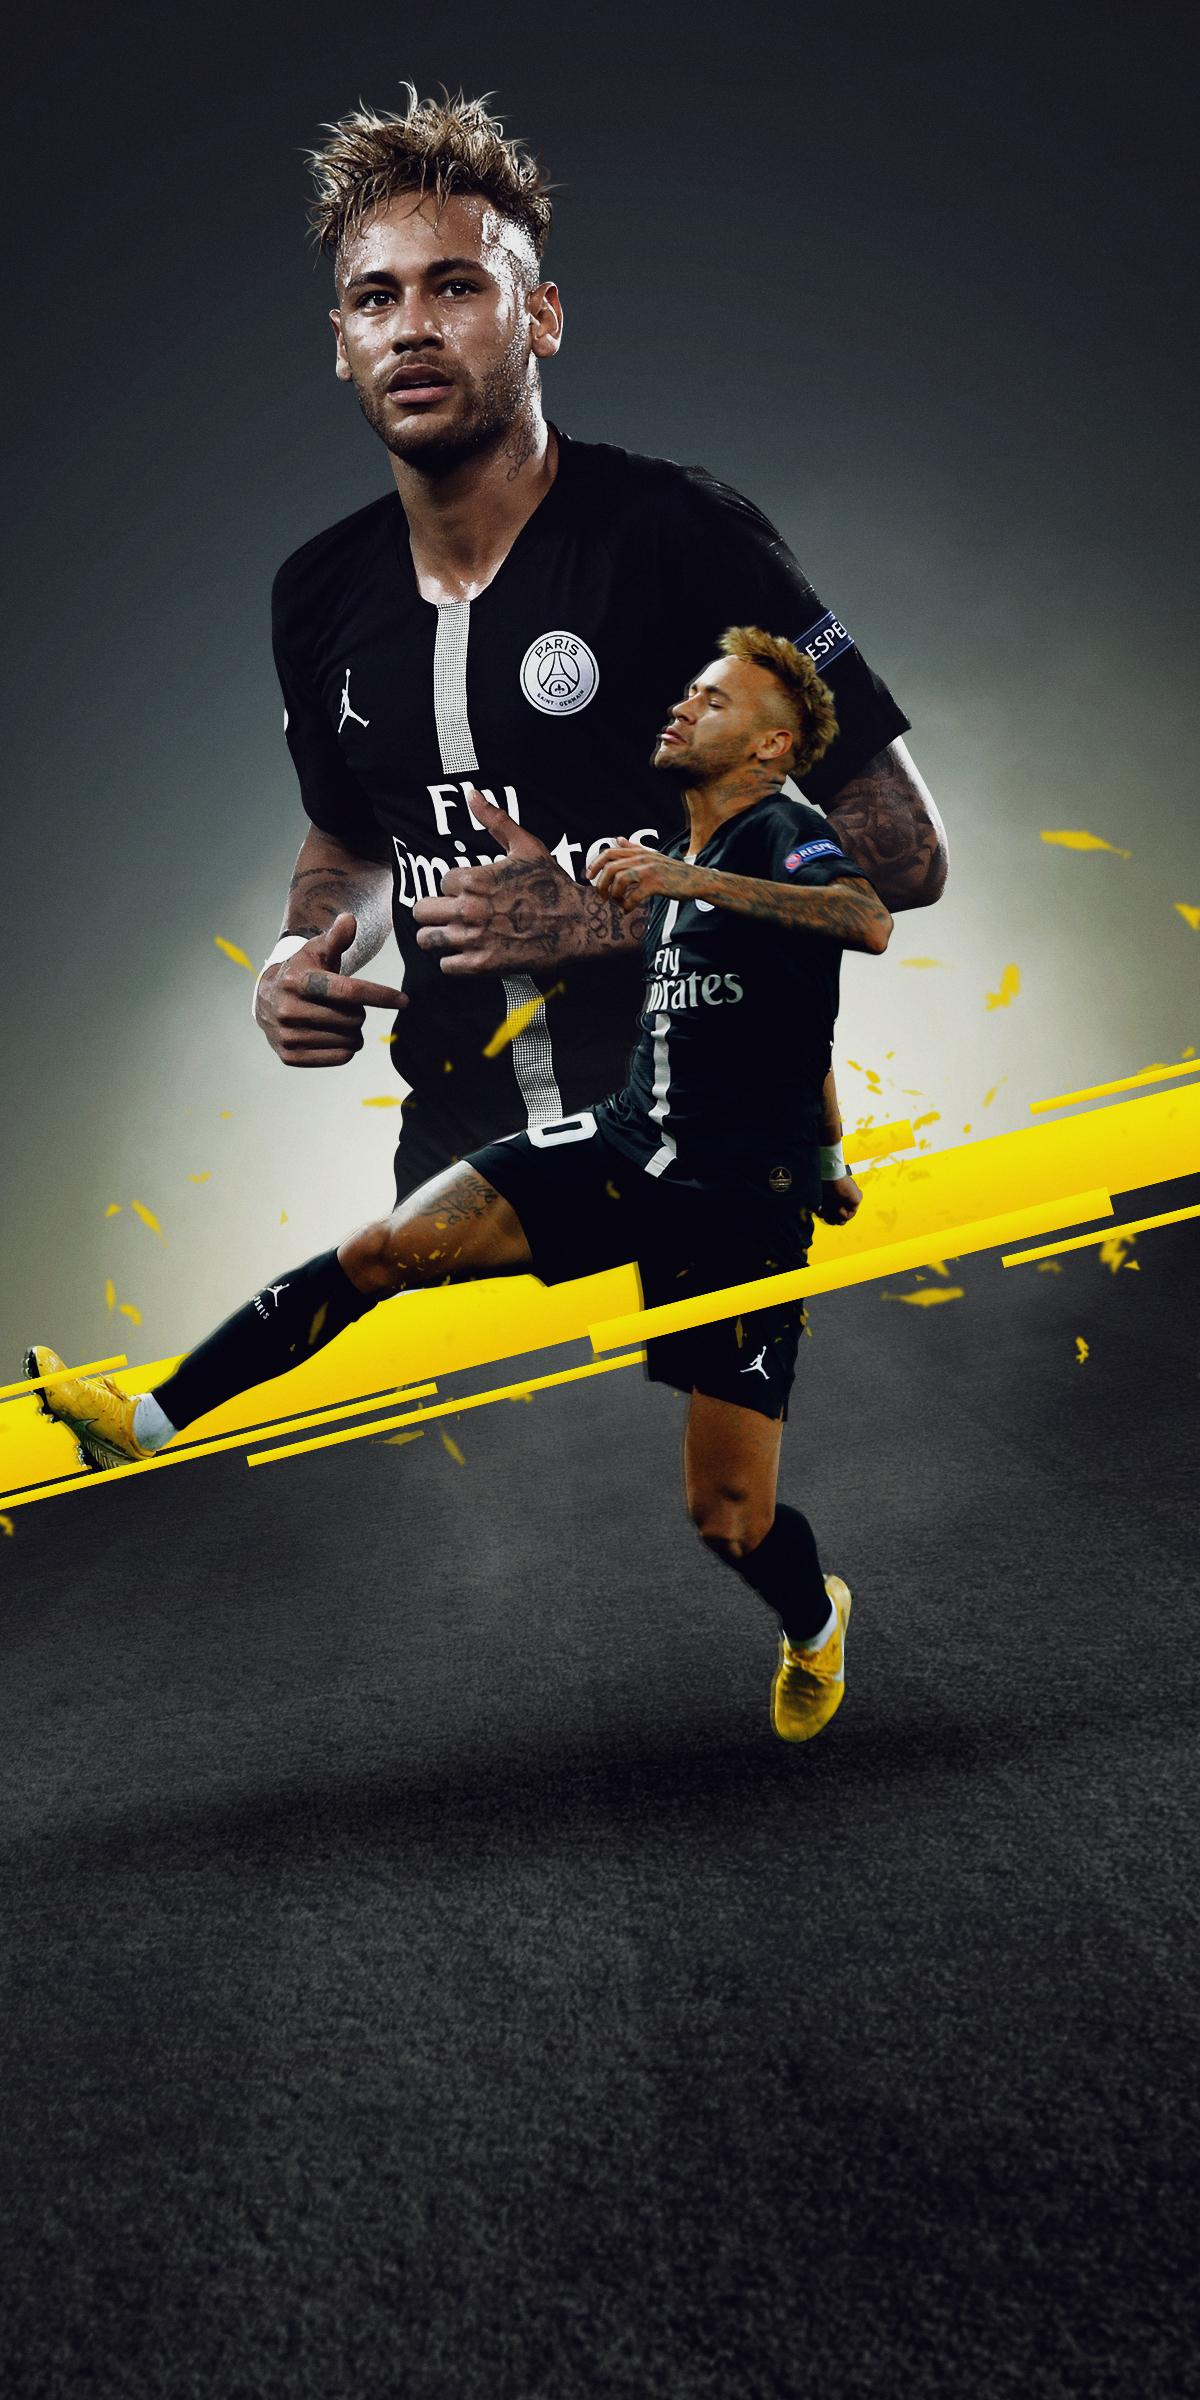 neymar wallpapers on wallpaperdog